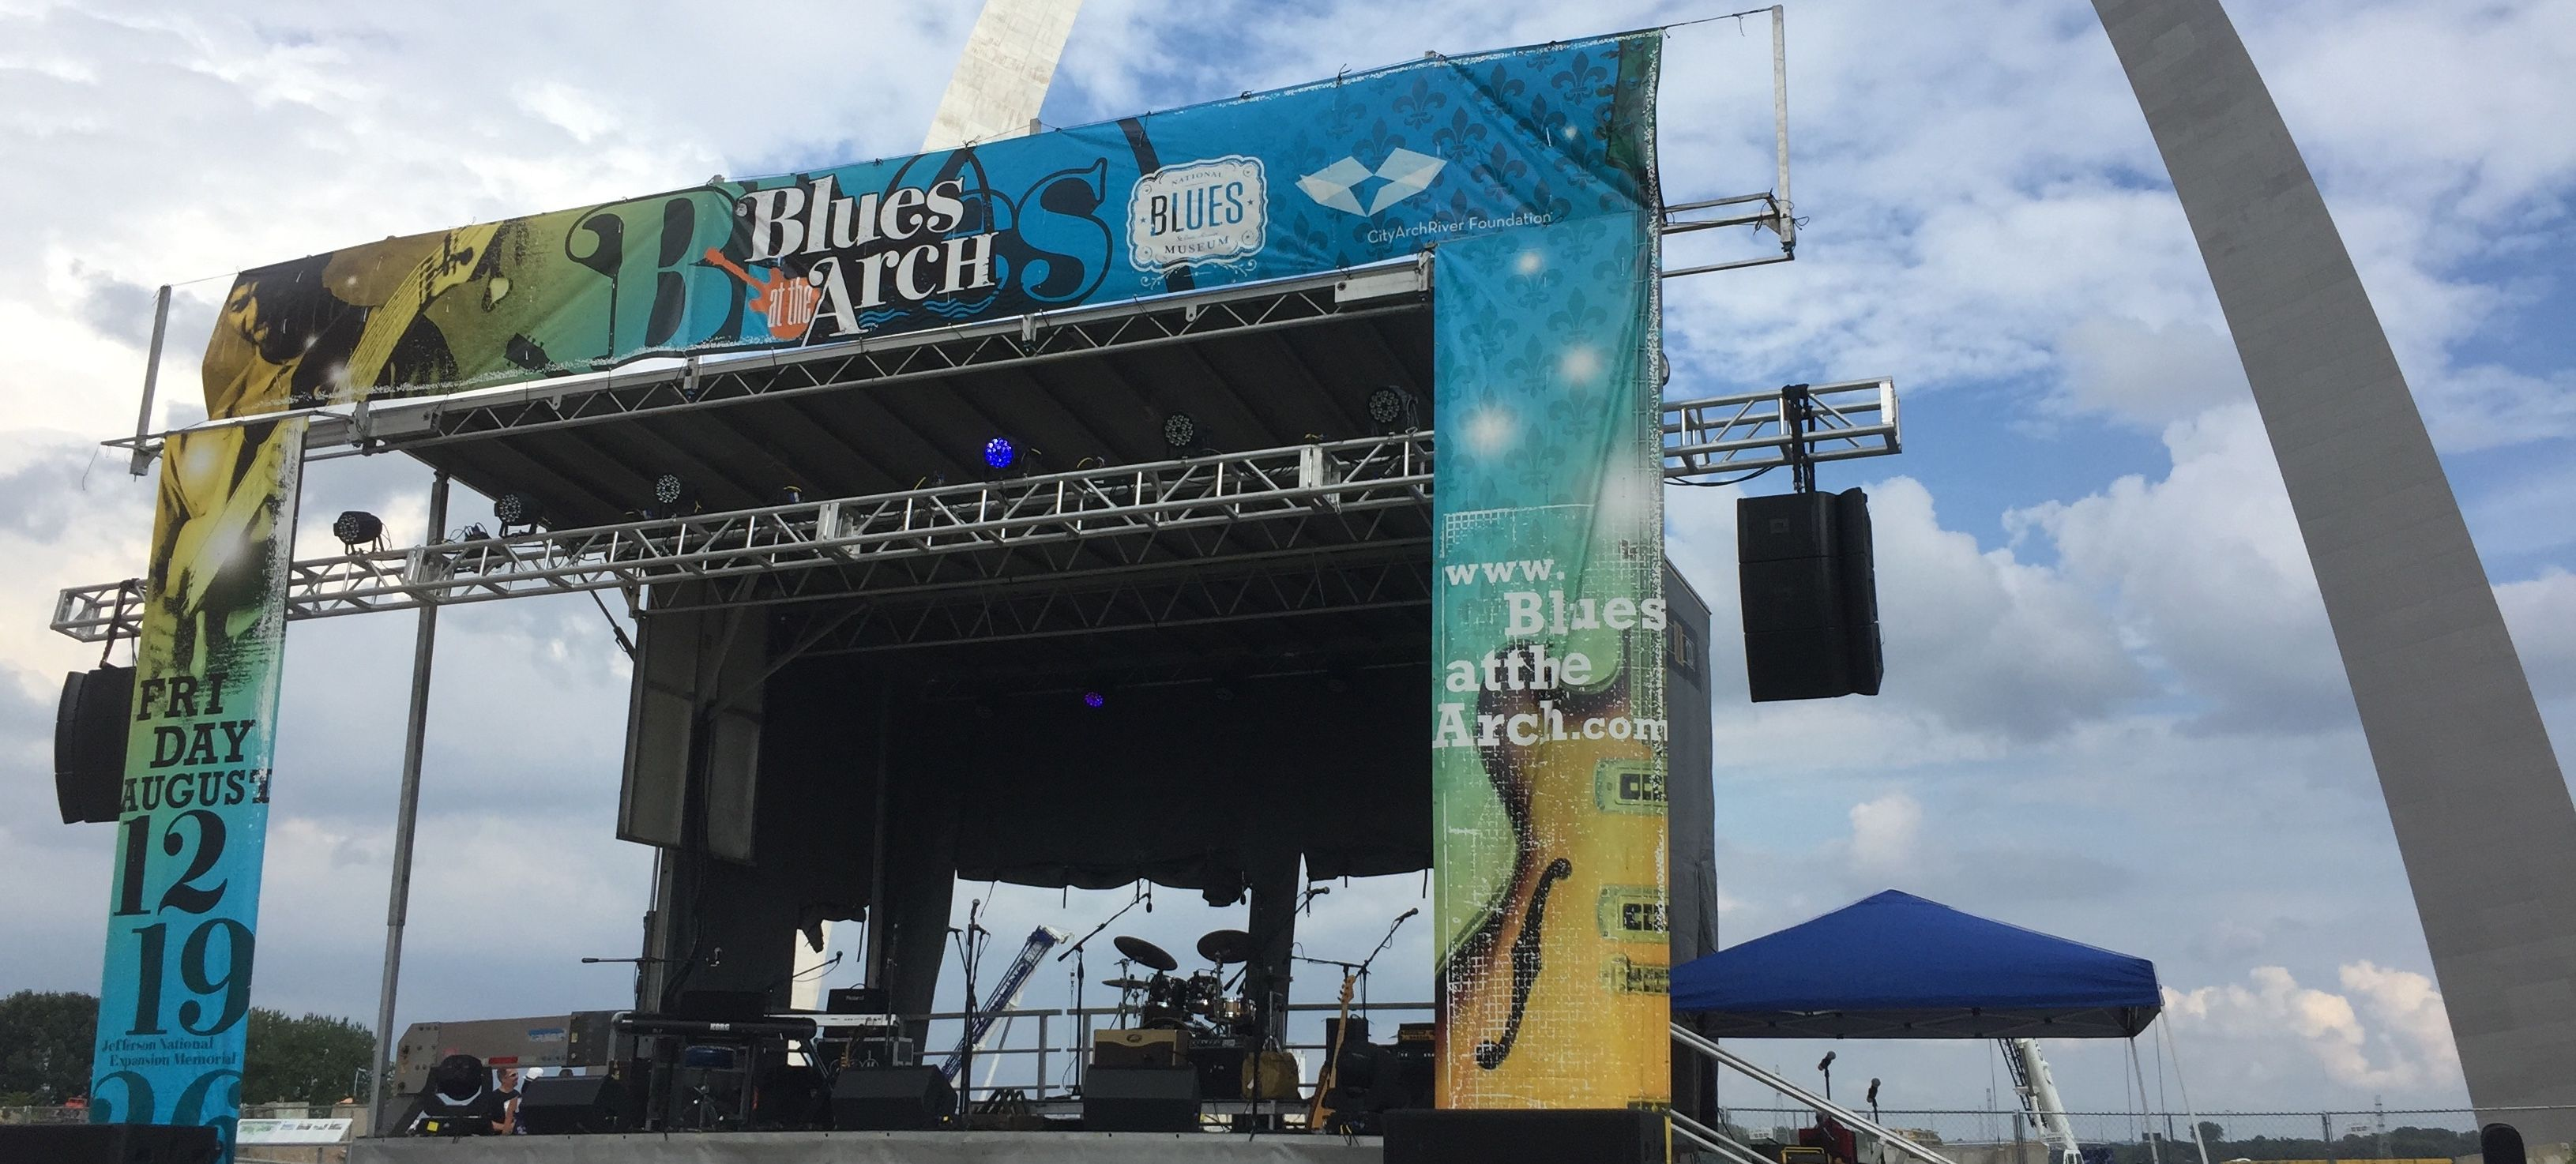 Blues at the Arch Stage in front of the Arch